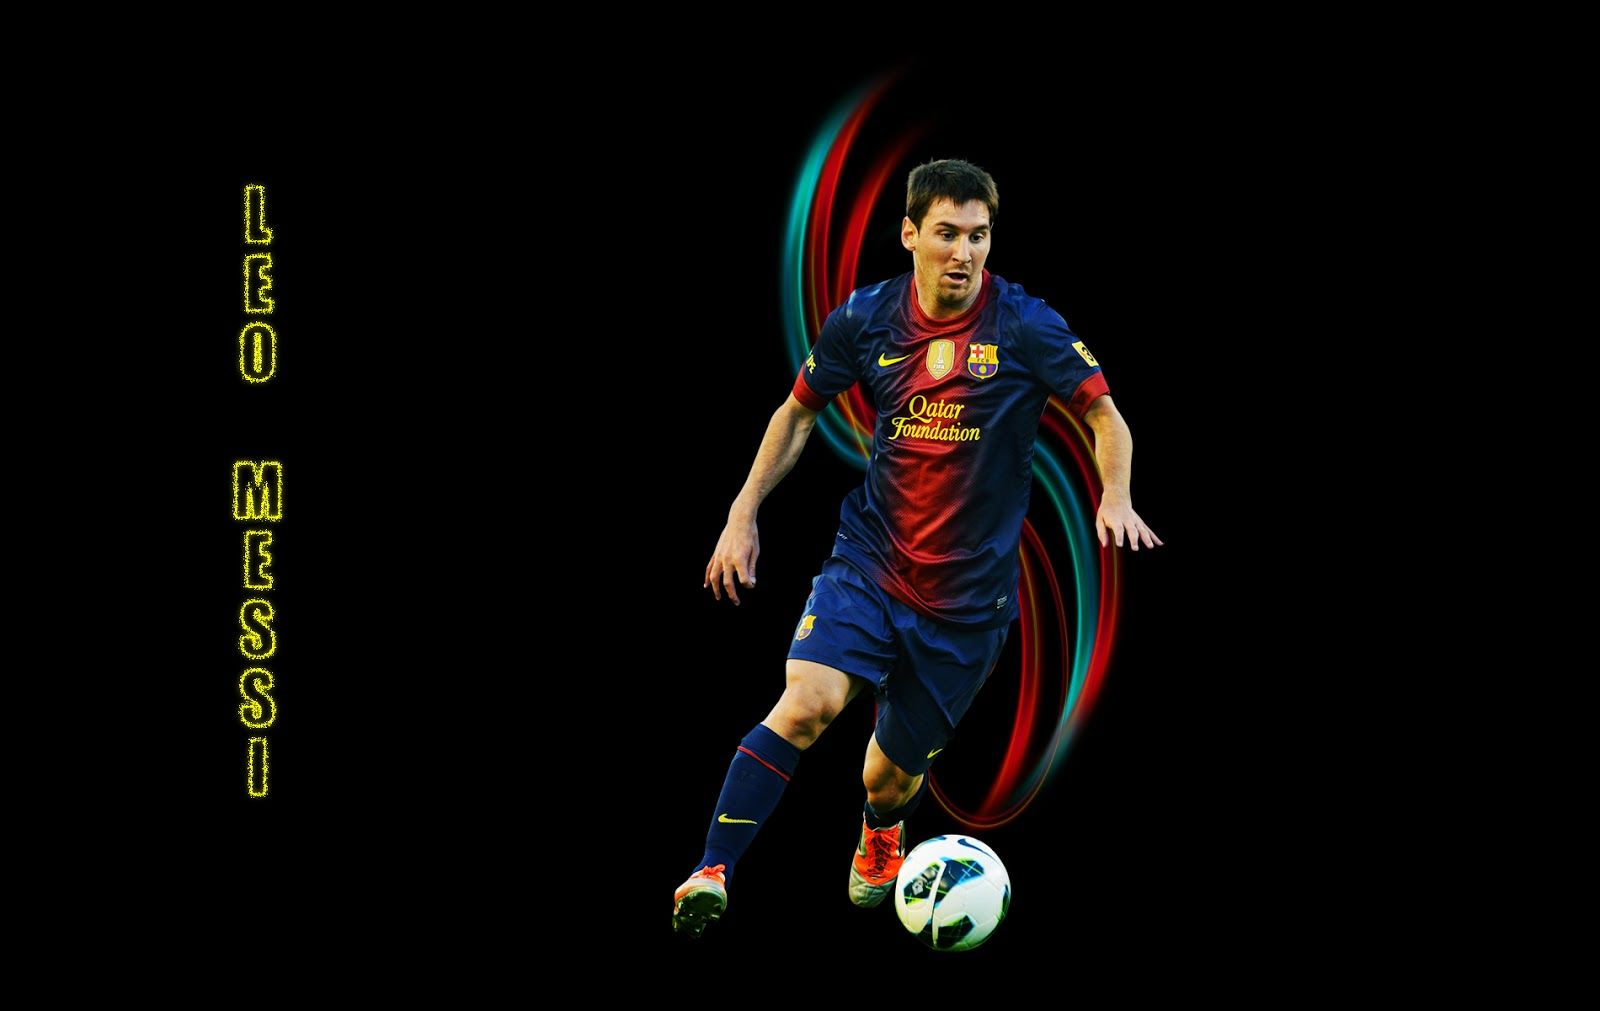 Messi HD Wallpapers 1080p 2015 1600x1011